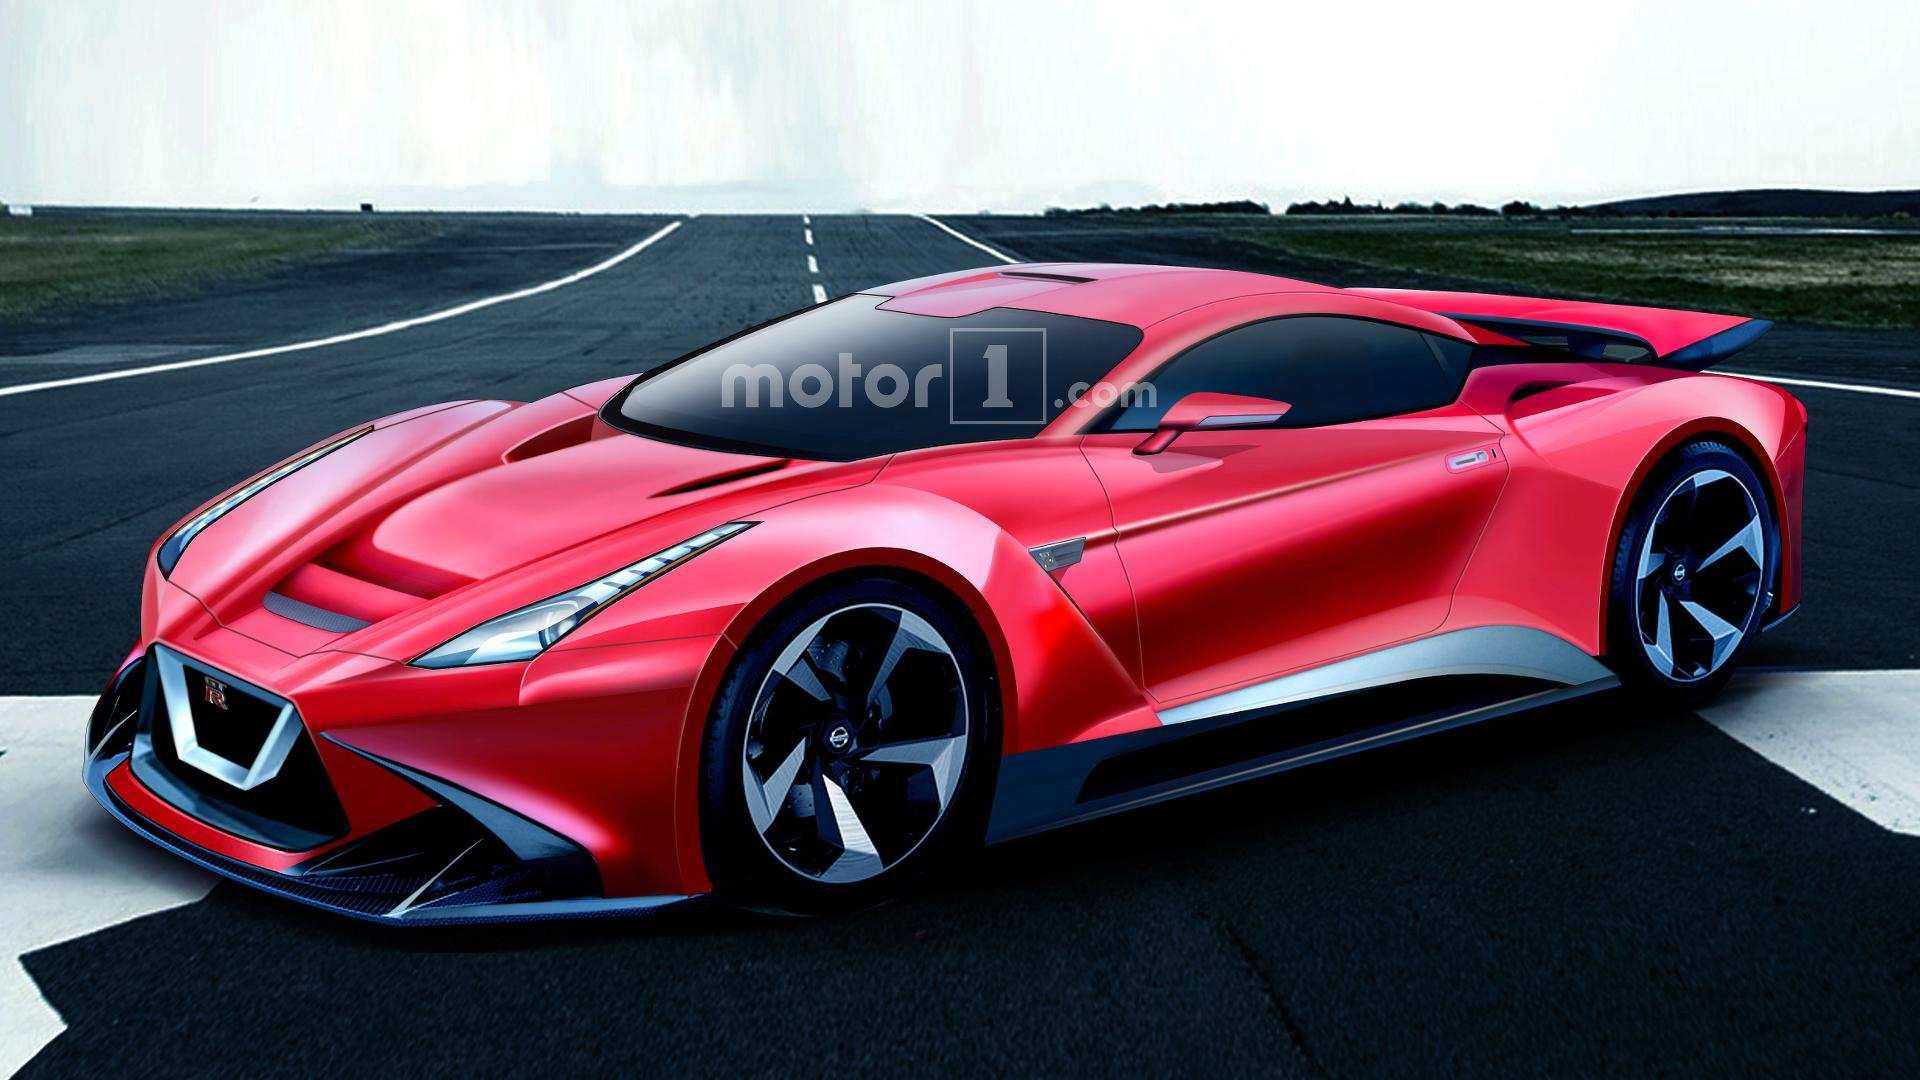 84 Best Review Nissan Gt R 36 2020 Price Redesign and Concept by Nissan Gt R 36 2020 Price